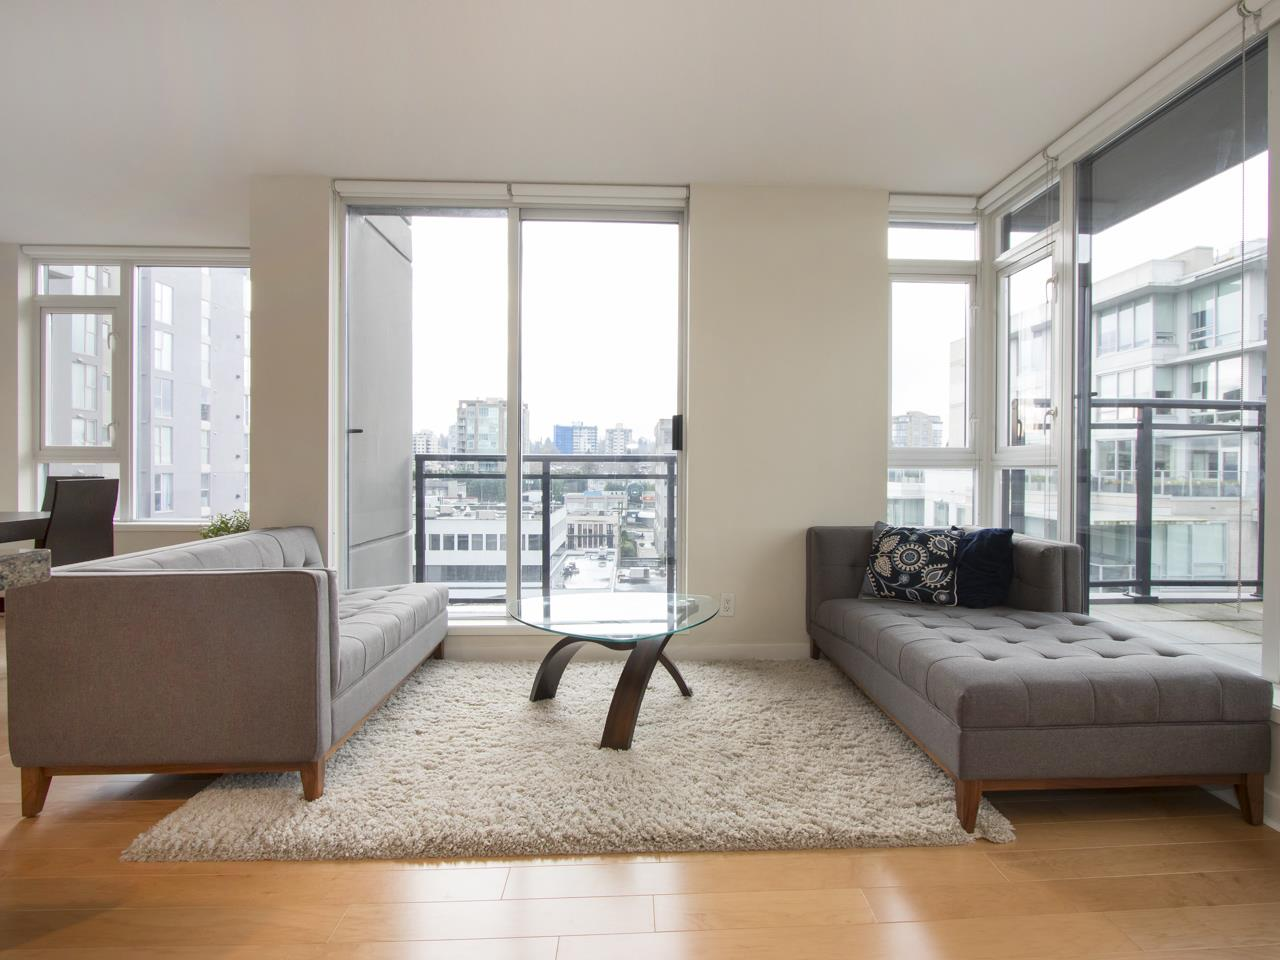 Photo 5: 1002 1650 W 7TH AVENUE in Vancouver: Fairview VW Condo for sale (Vancouver West)  : MLS® # R2022214